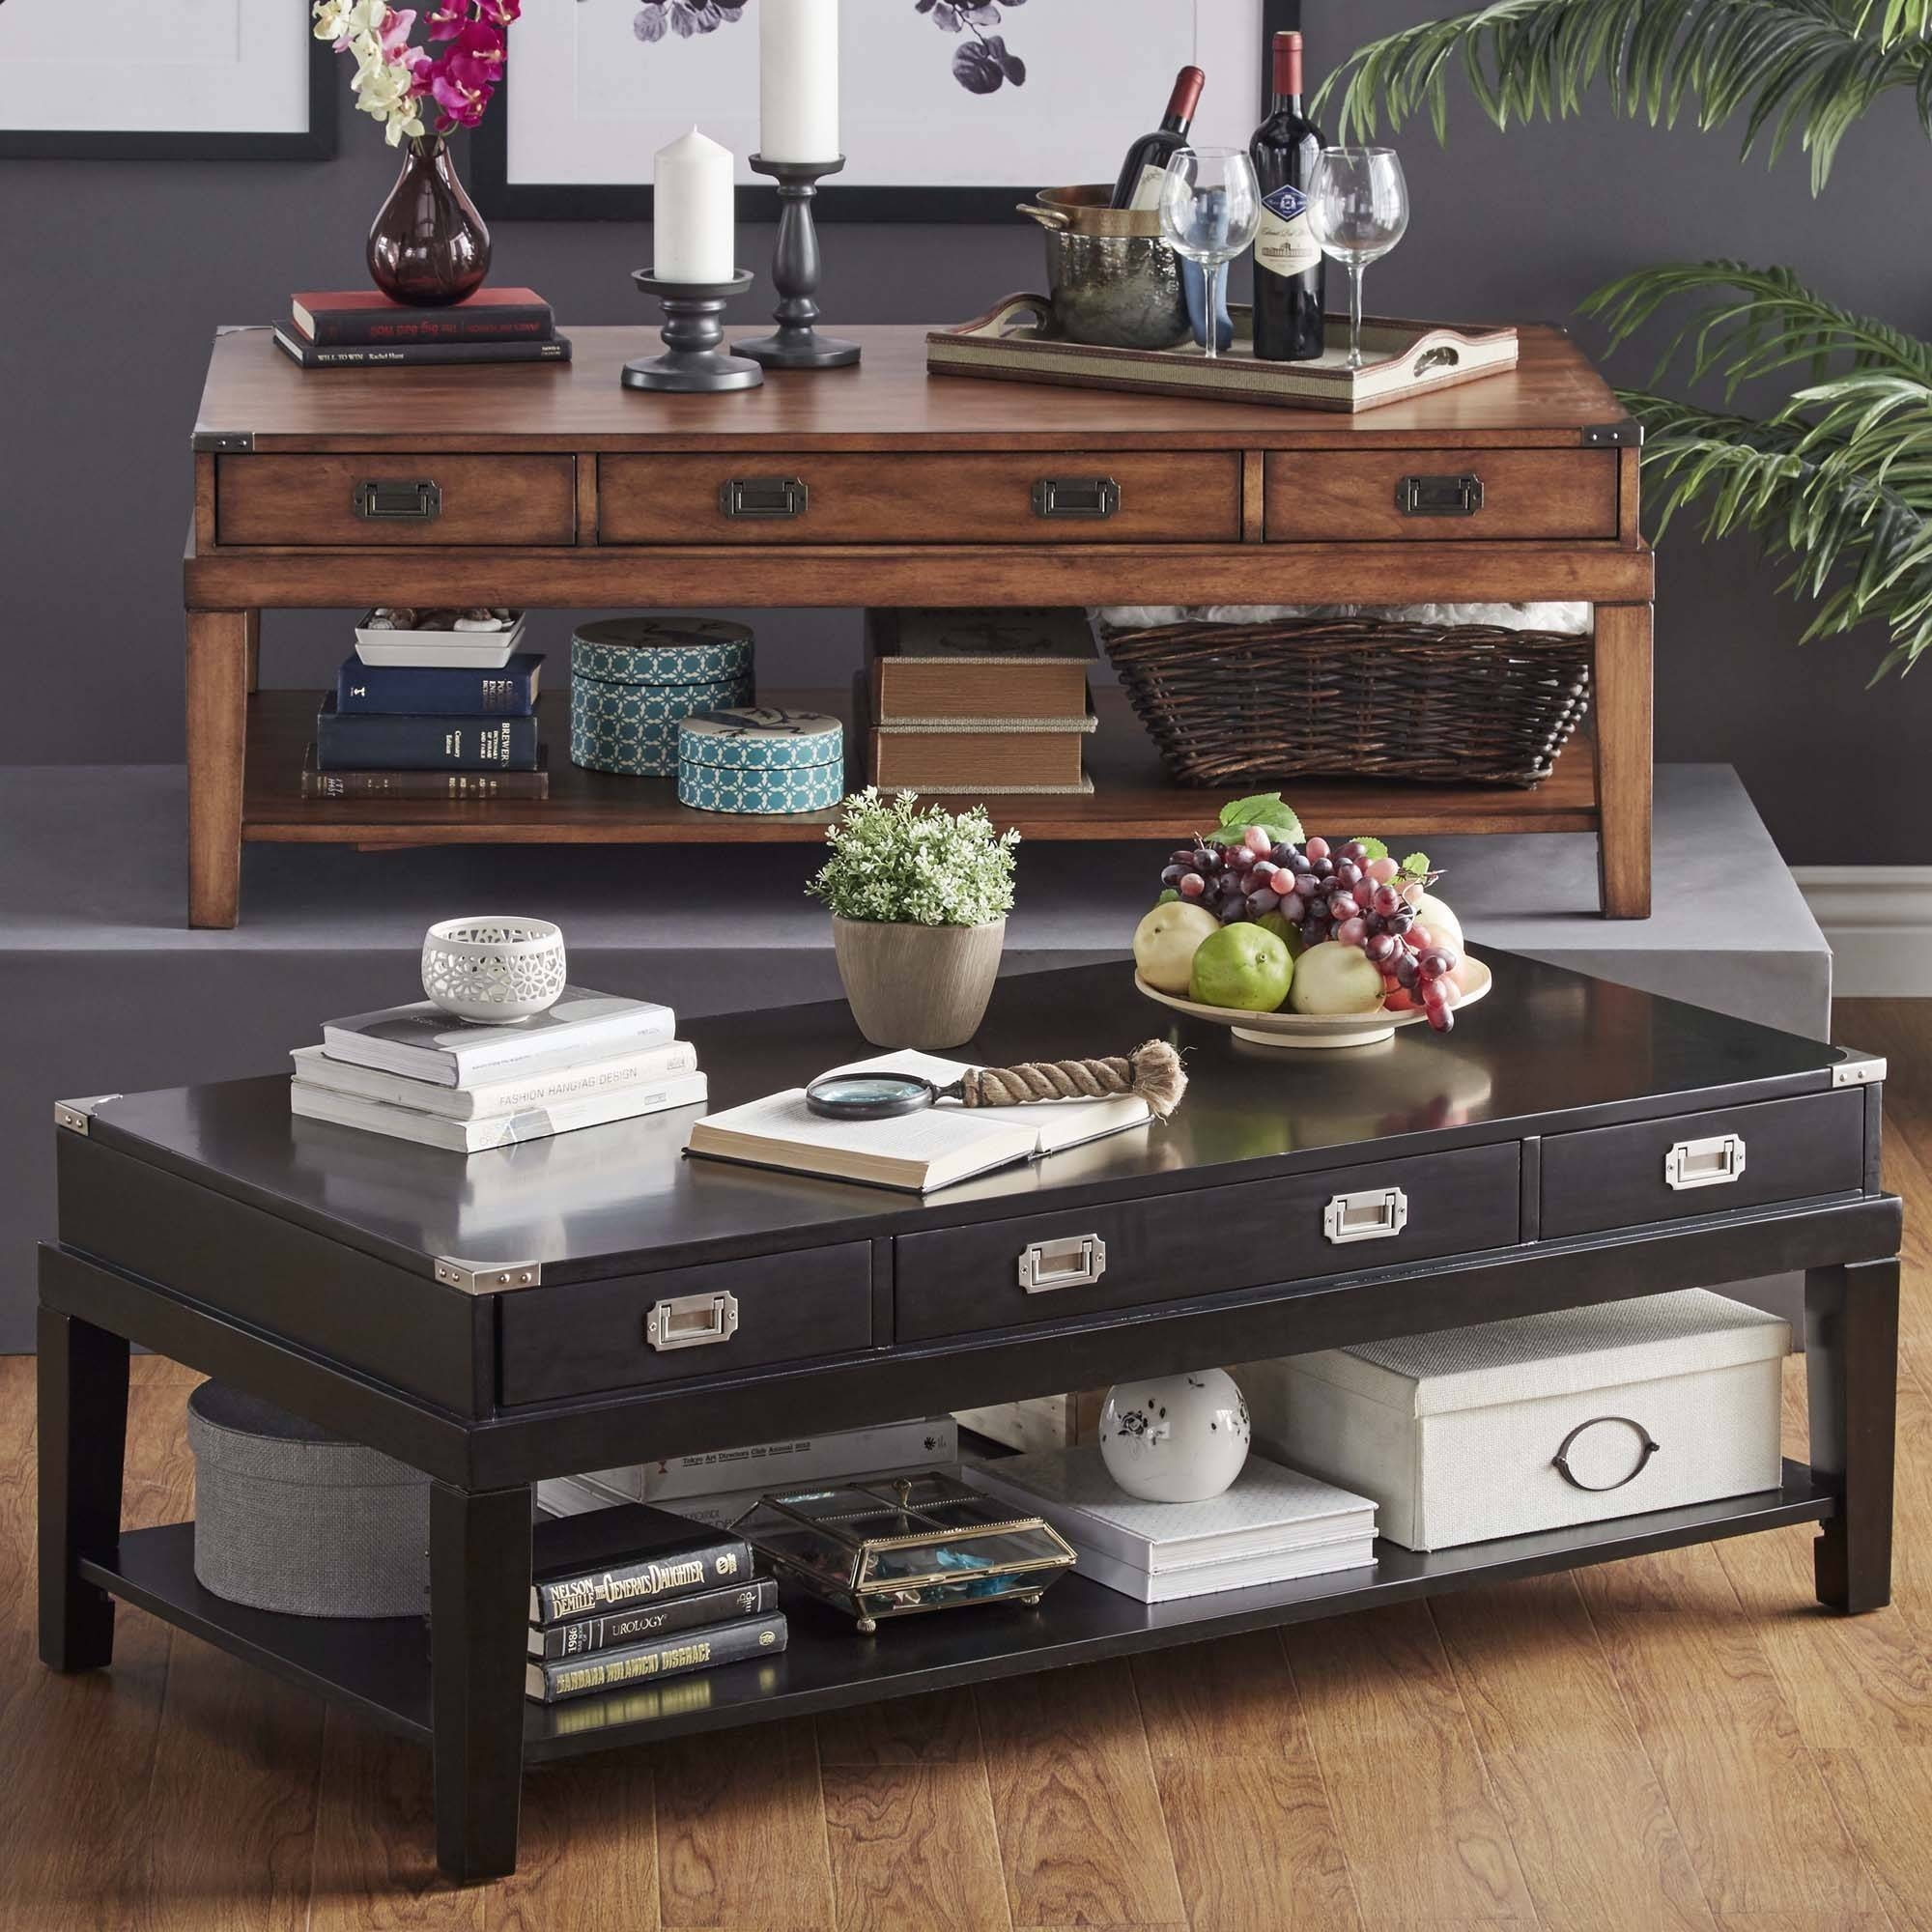 Lonny Wood Storage Accent Campaign Coffee Tableinspire Q in Campaign Coffee Tables (Image 19 of 30)